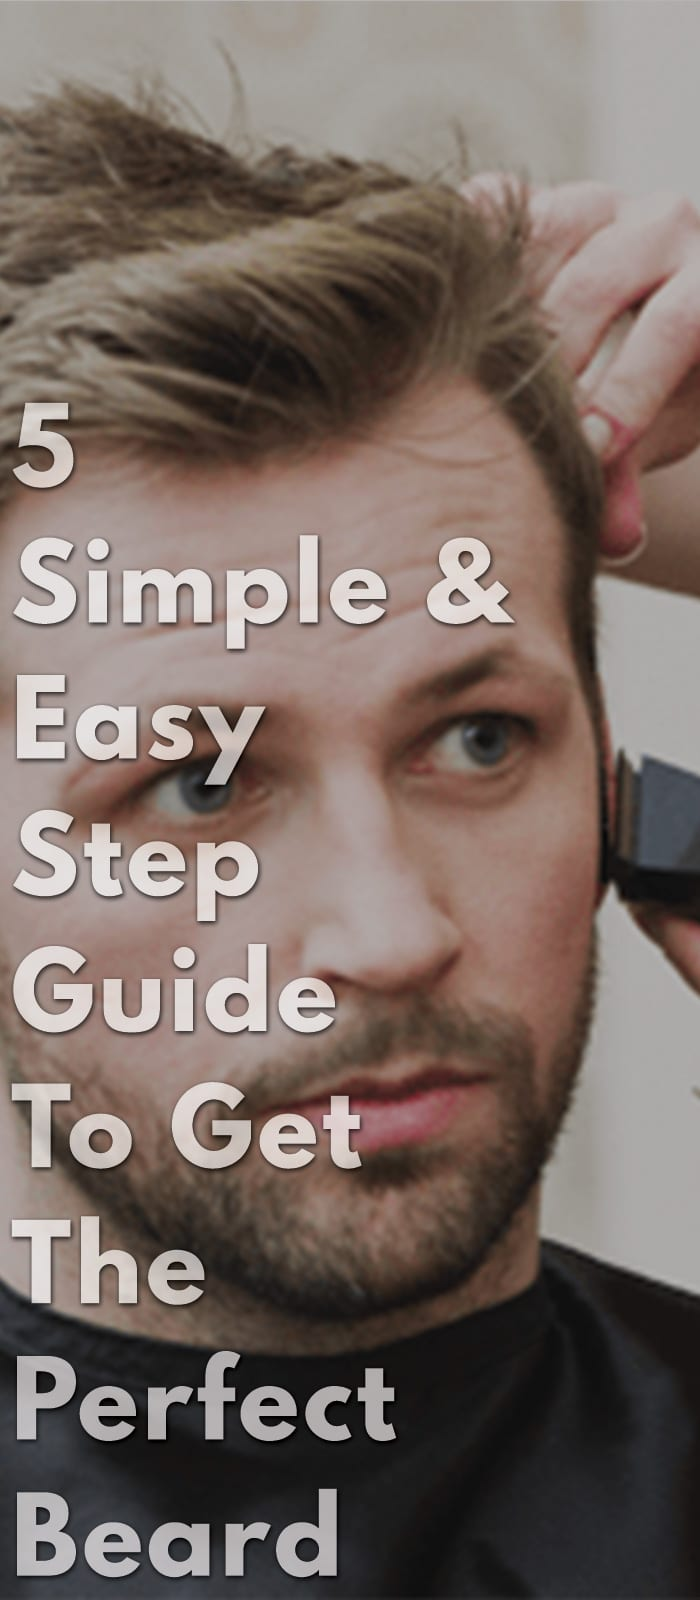 5-Simple-&-Easy-Step-Guide-To-Get-The-Perfect-Beard